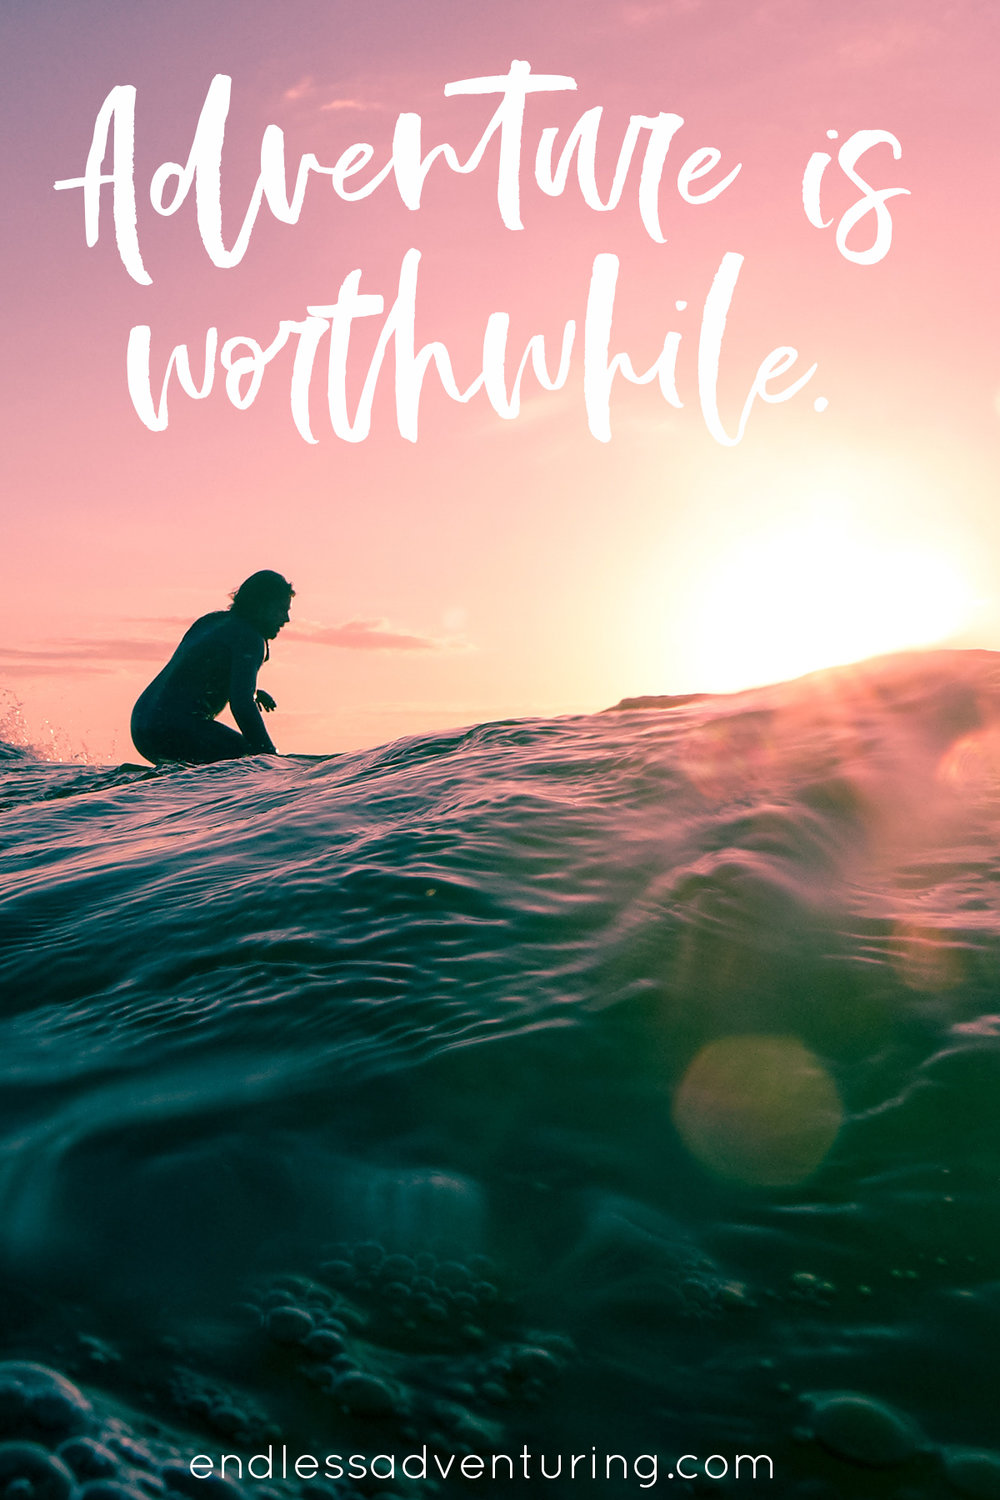 Adventure Quote - Adventure is Worthwhile